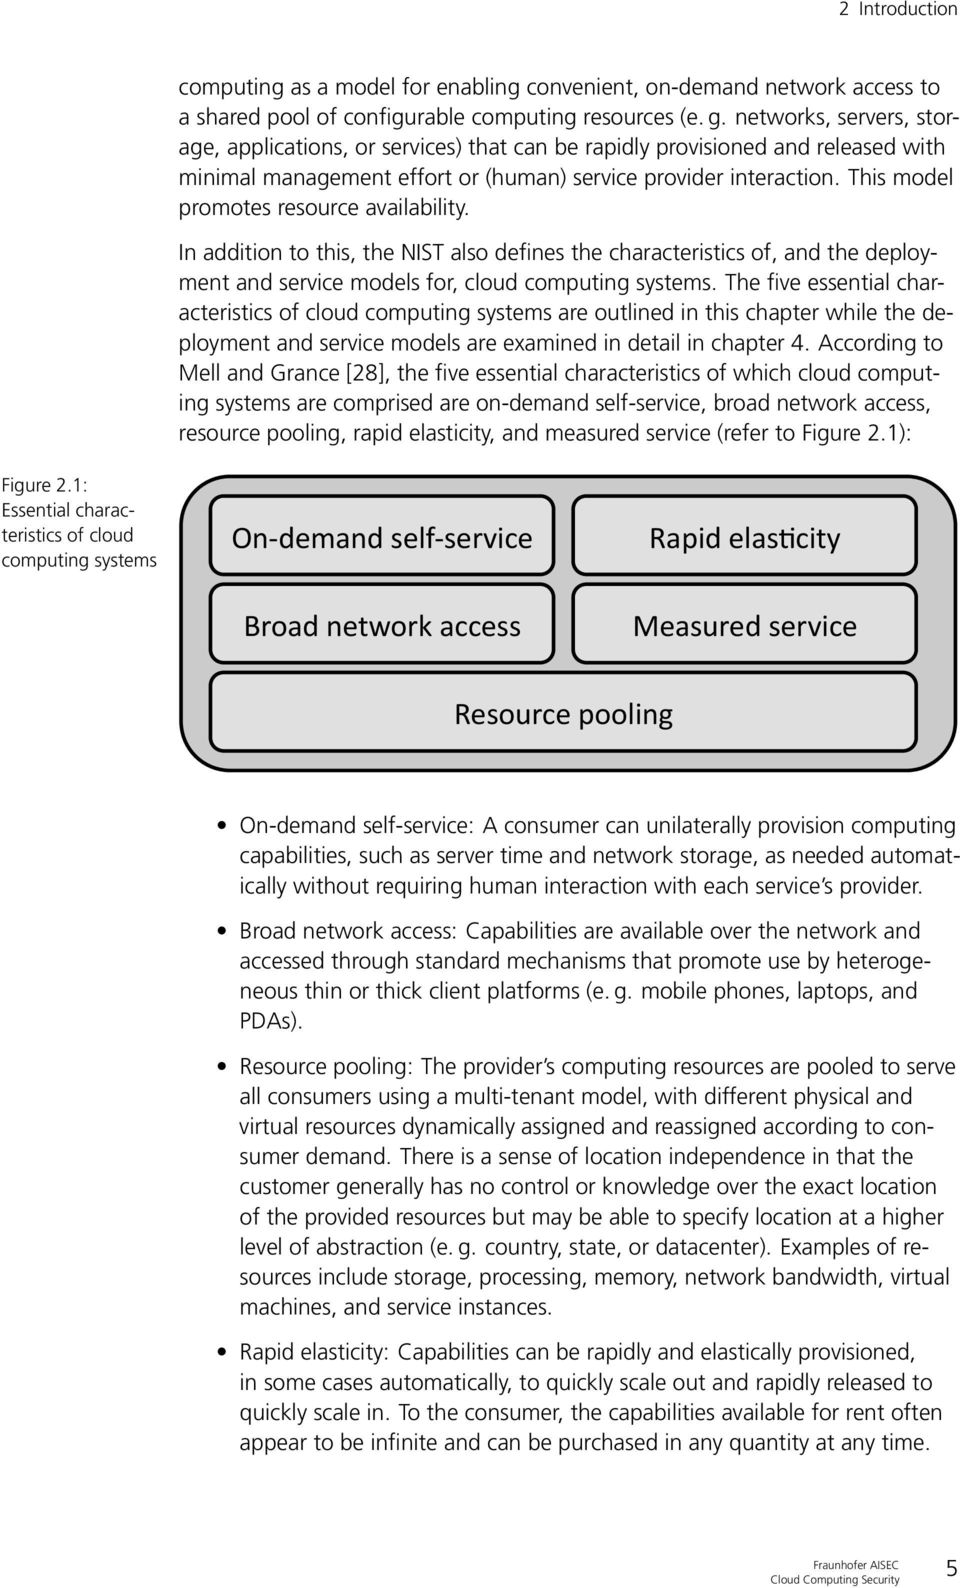 This model promotes resource availability. In addition to this, the NIST also defines the characteristics of, and the deployment and service models for, cloud computing systems.